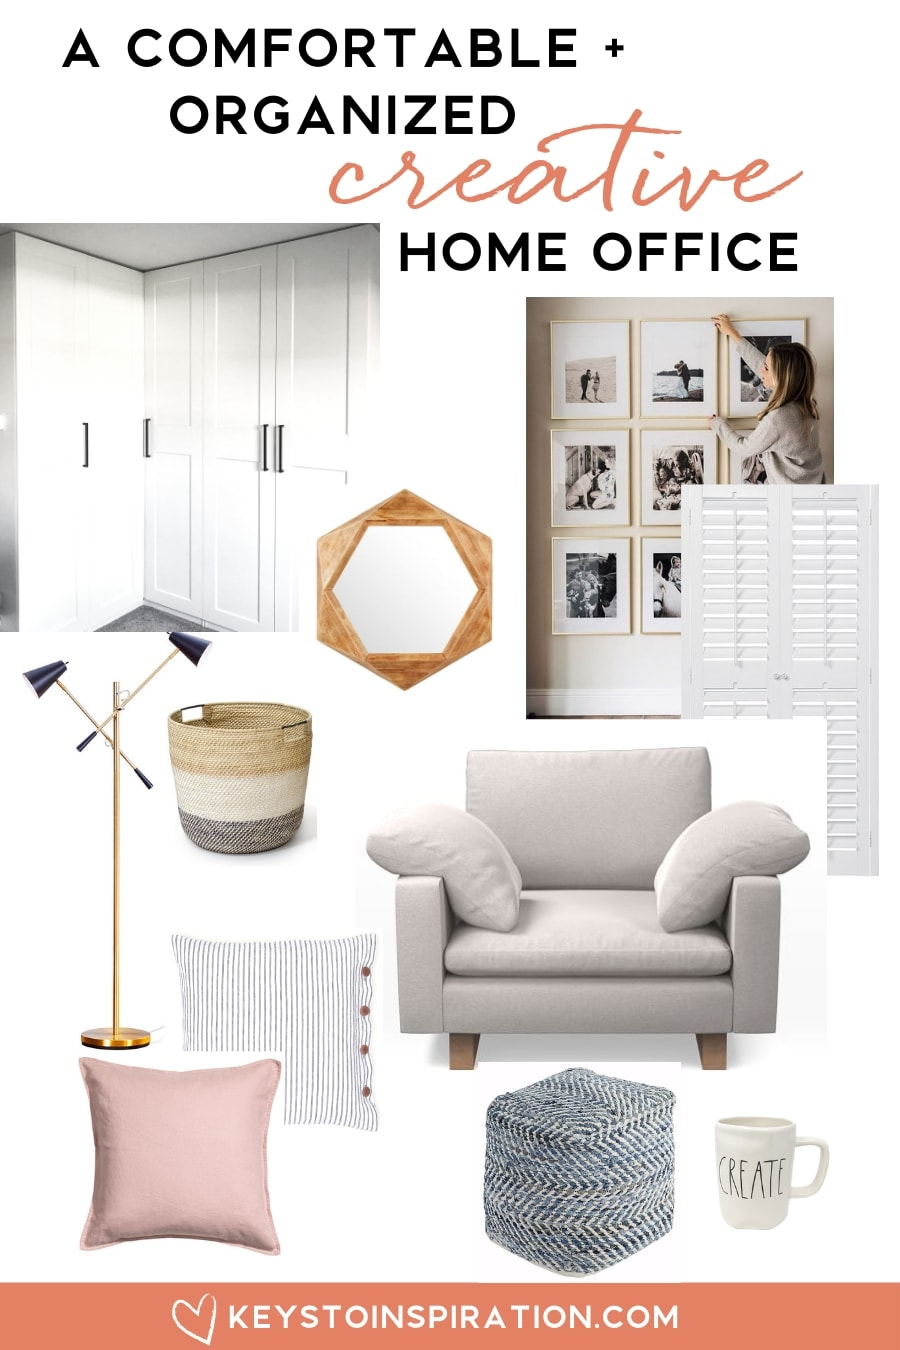 Home Office Club Planning A Comfortable And Organized Creative Home Office Keys To